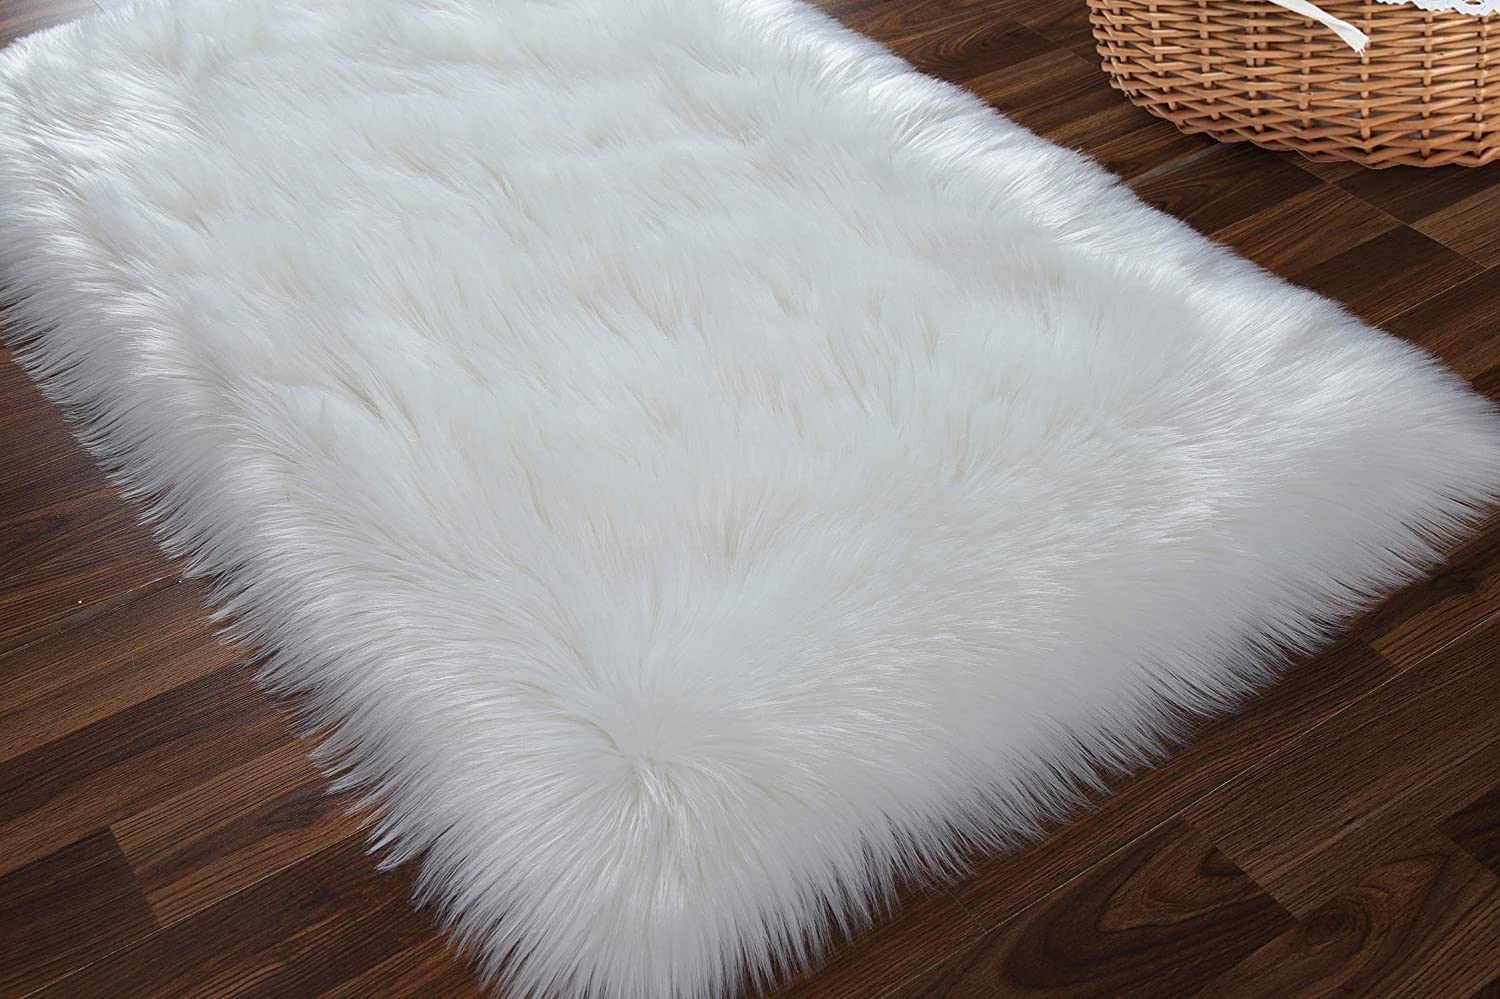 AROGAN Premium Fluffy Faux Fur Area Rug, Luxurious Soft Bedroom Bedside Rug, High Pile, Warm, Washable Carpets for Living Room Photography Home Decor, 2 x 3 Feet White